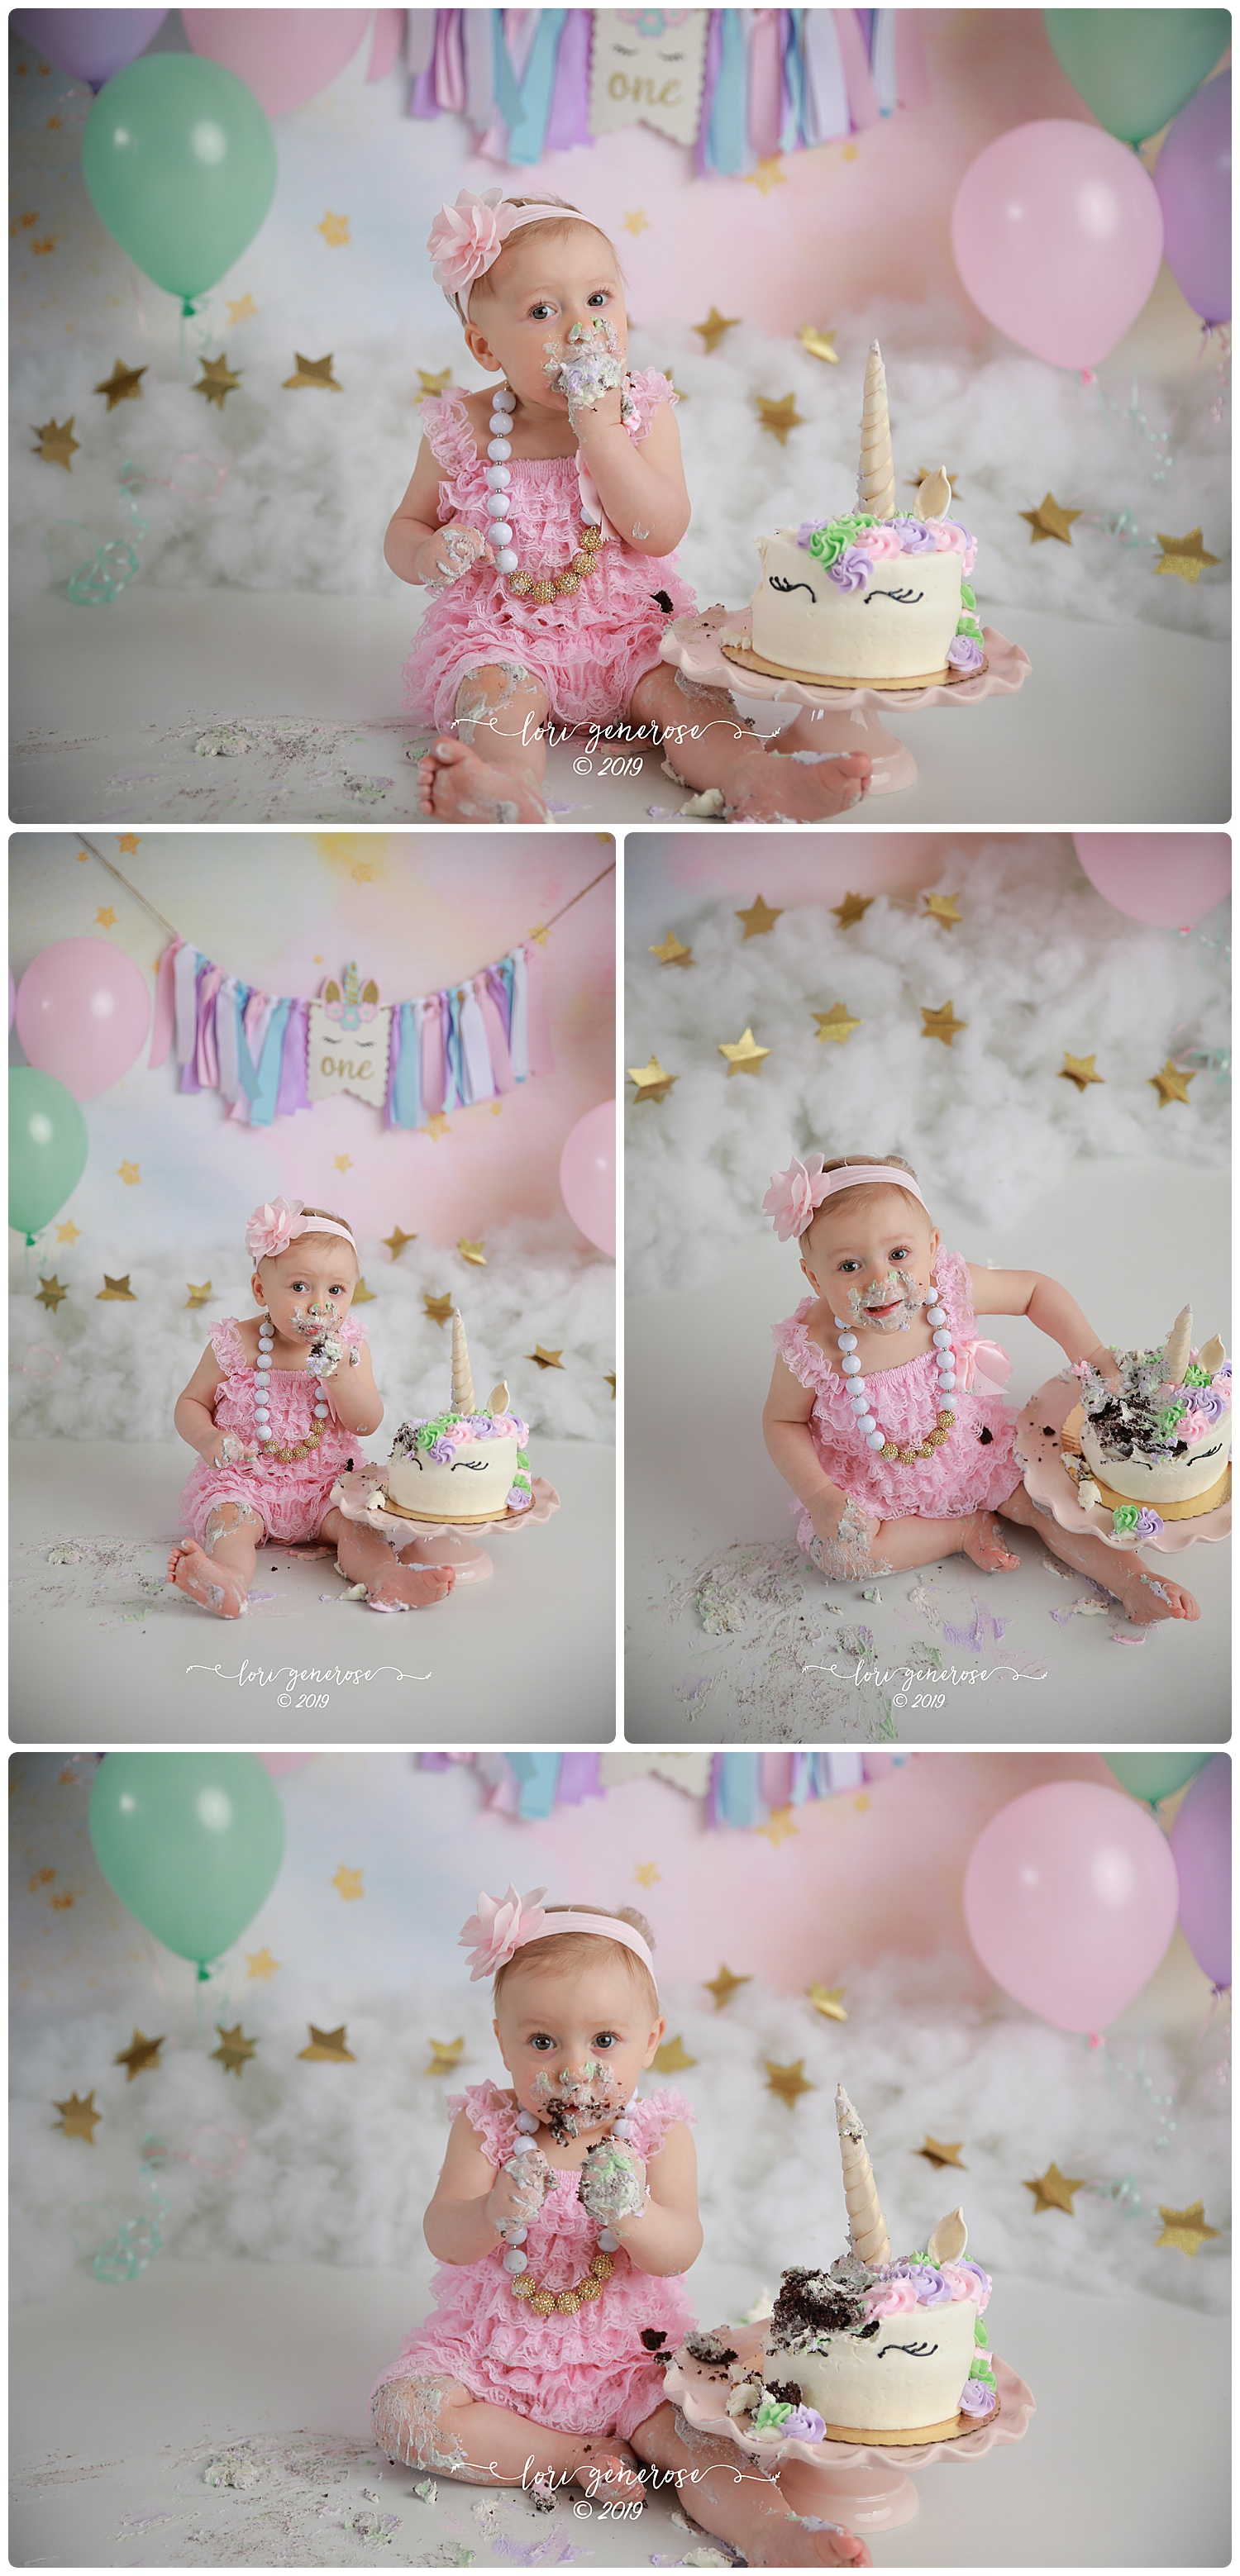 How gorgeous is this set up with baby McKinley?!?! I LOVE everything about it! And how is she almost ONE?!? I vividly remember her newborn photos ❤️  The Bakery Nook  nailed it with this cake! One of the most beautiful cakes I've ever seen!  Custom By Candice  did a beautiful job on the banner as well! Happy birthday sweet girlie 🌈